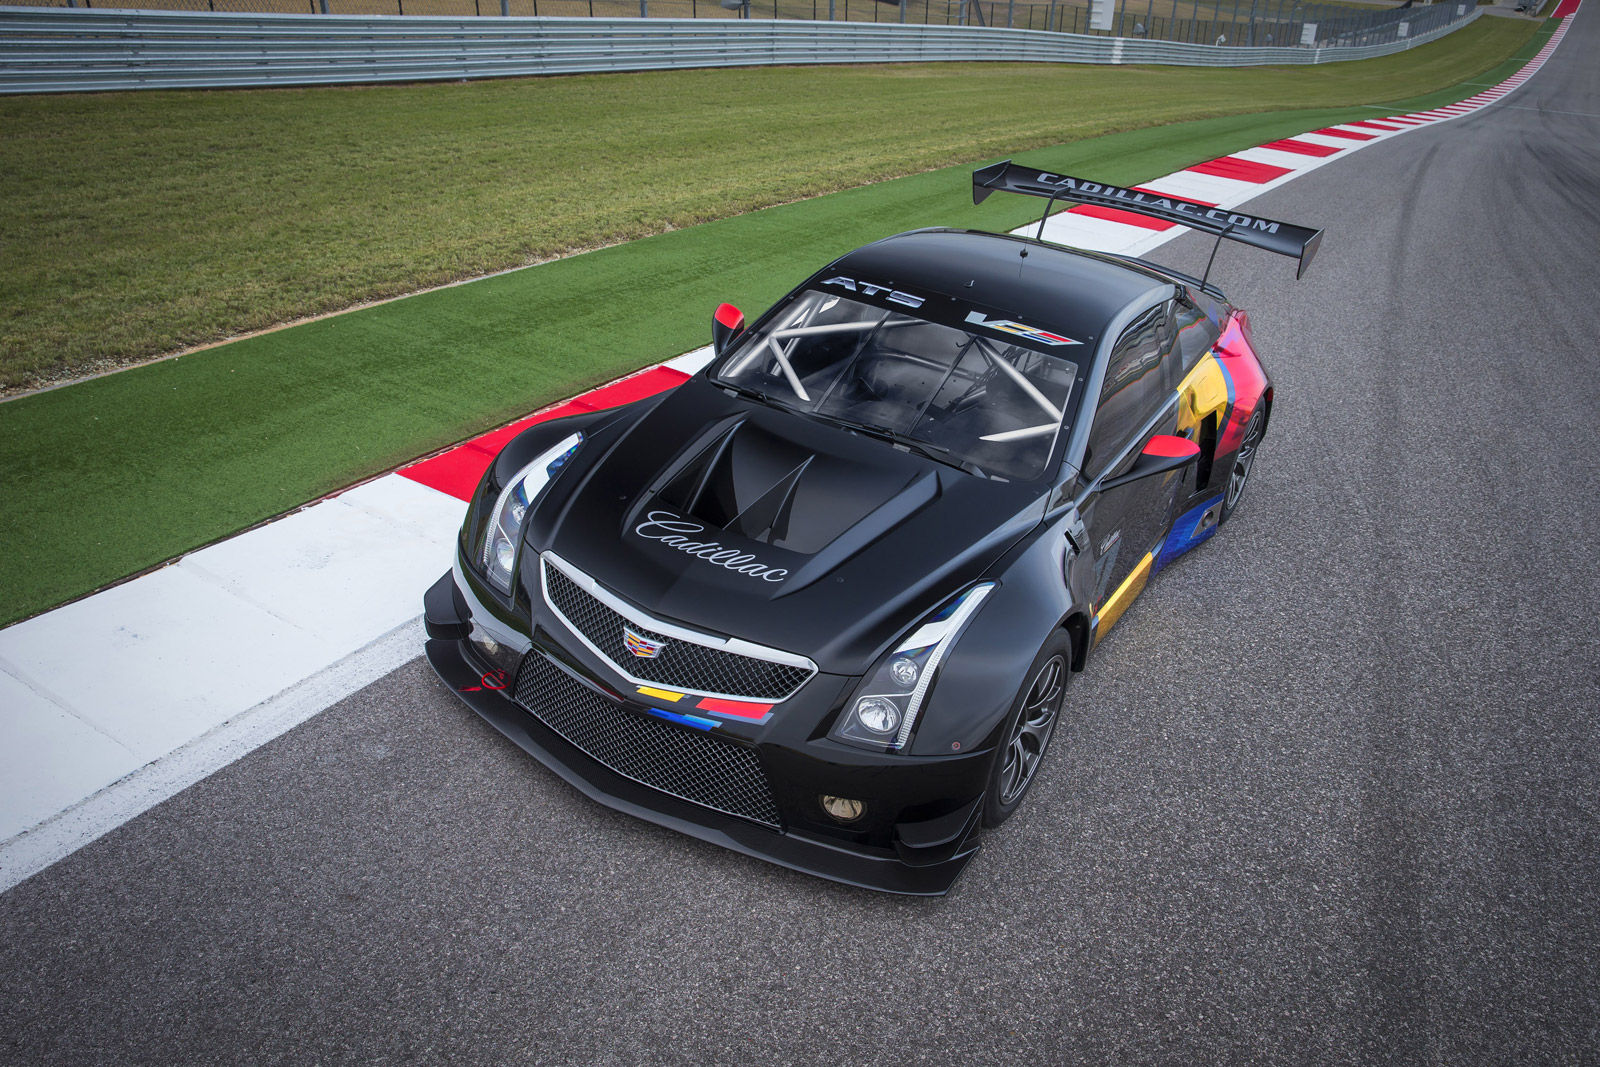 2016 cadillac ats v coupe spawns gt3 spec race car video. Black Bedroom Furniture Sets. Home Design Ideas